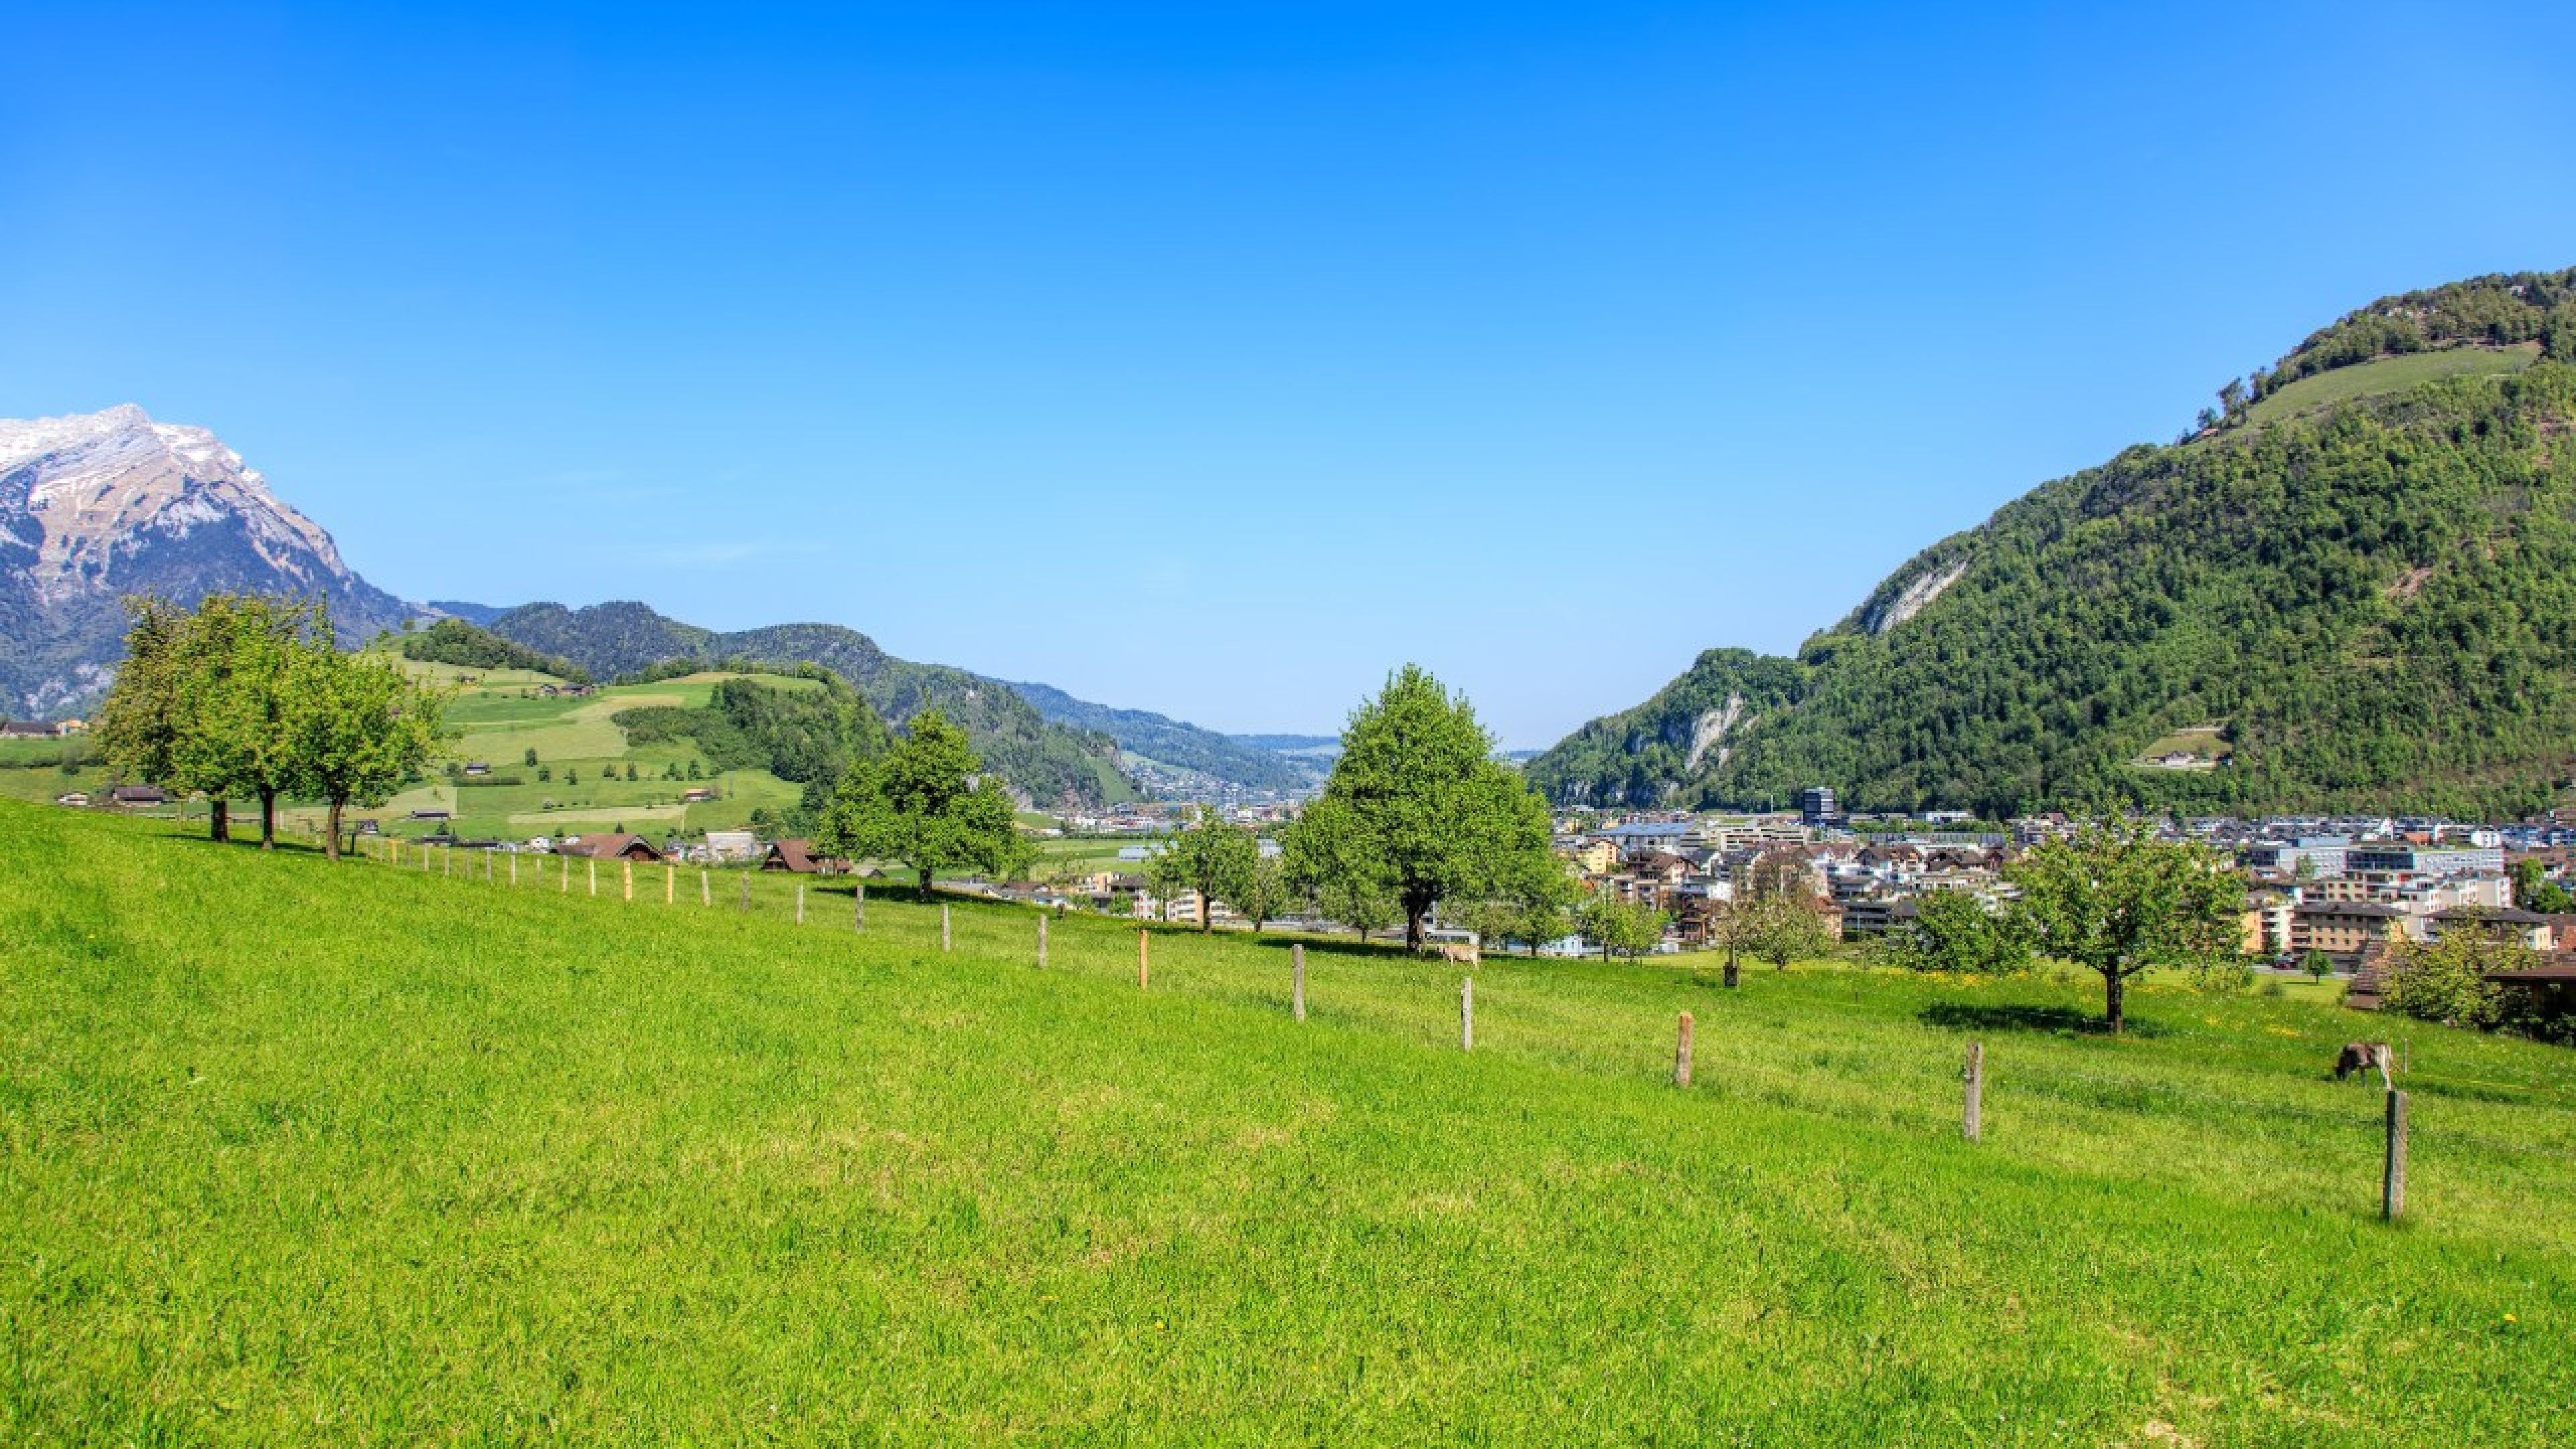 Landscape in the Swiss canton of Nidwalden, in the region of the town of Stans, in the beginning of May.